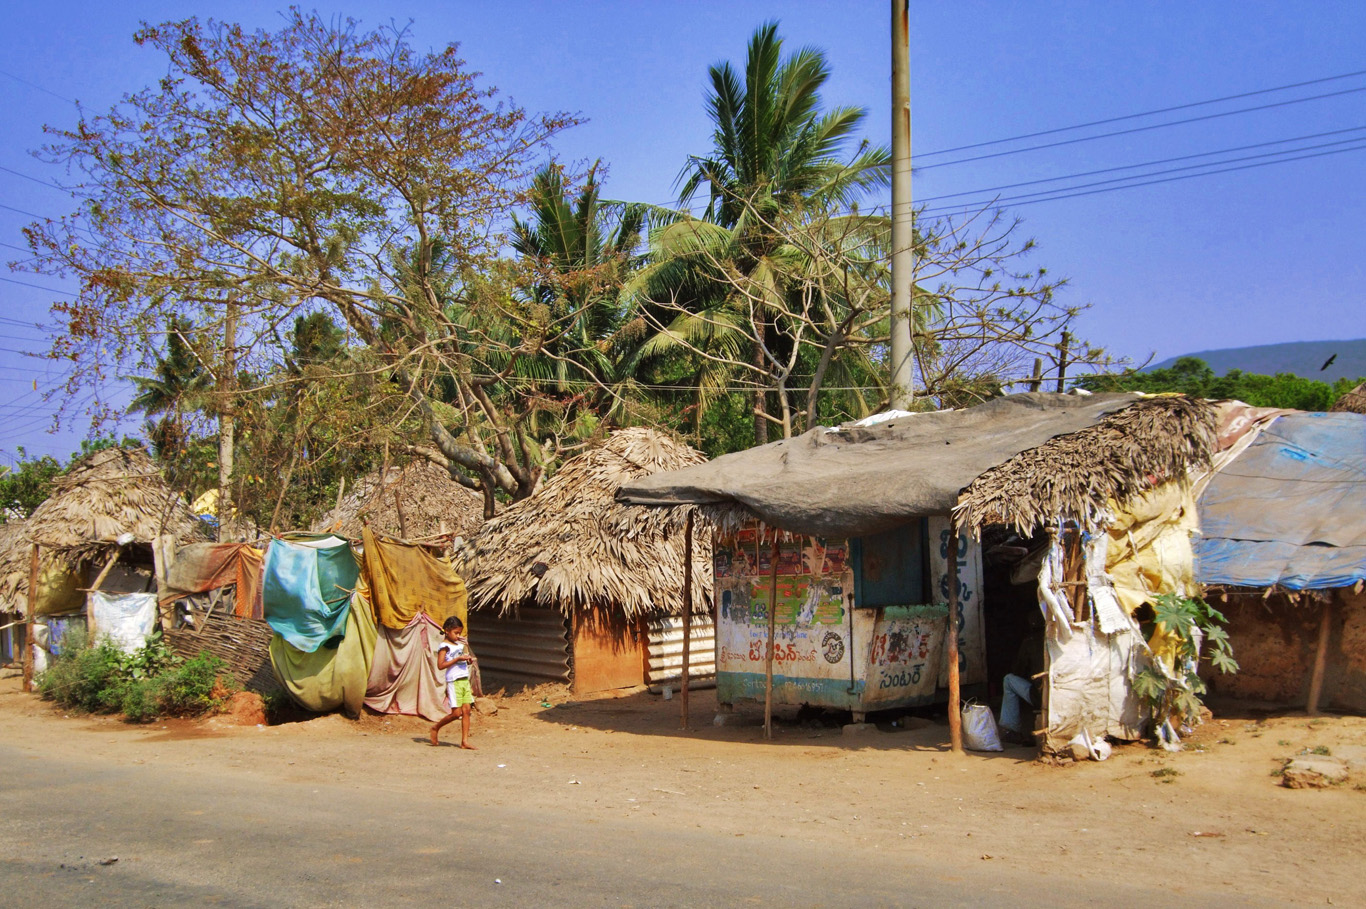 Huts in the very center of Visakhapatnam